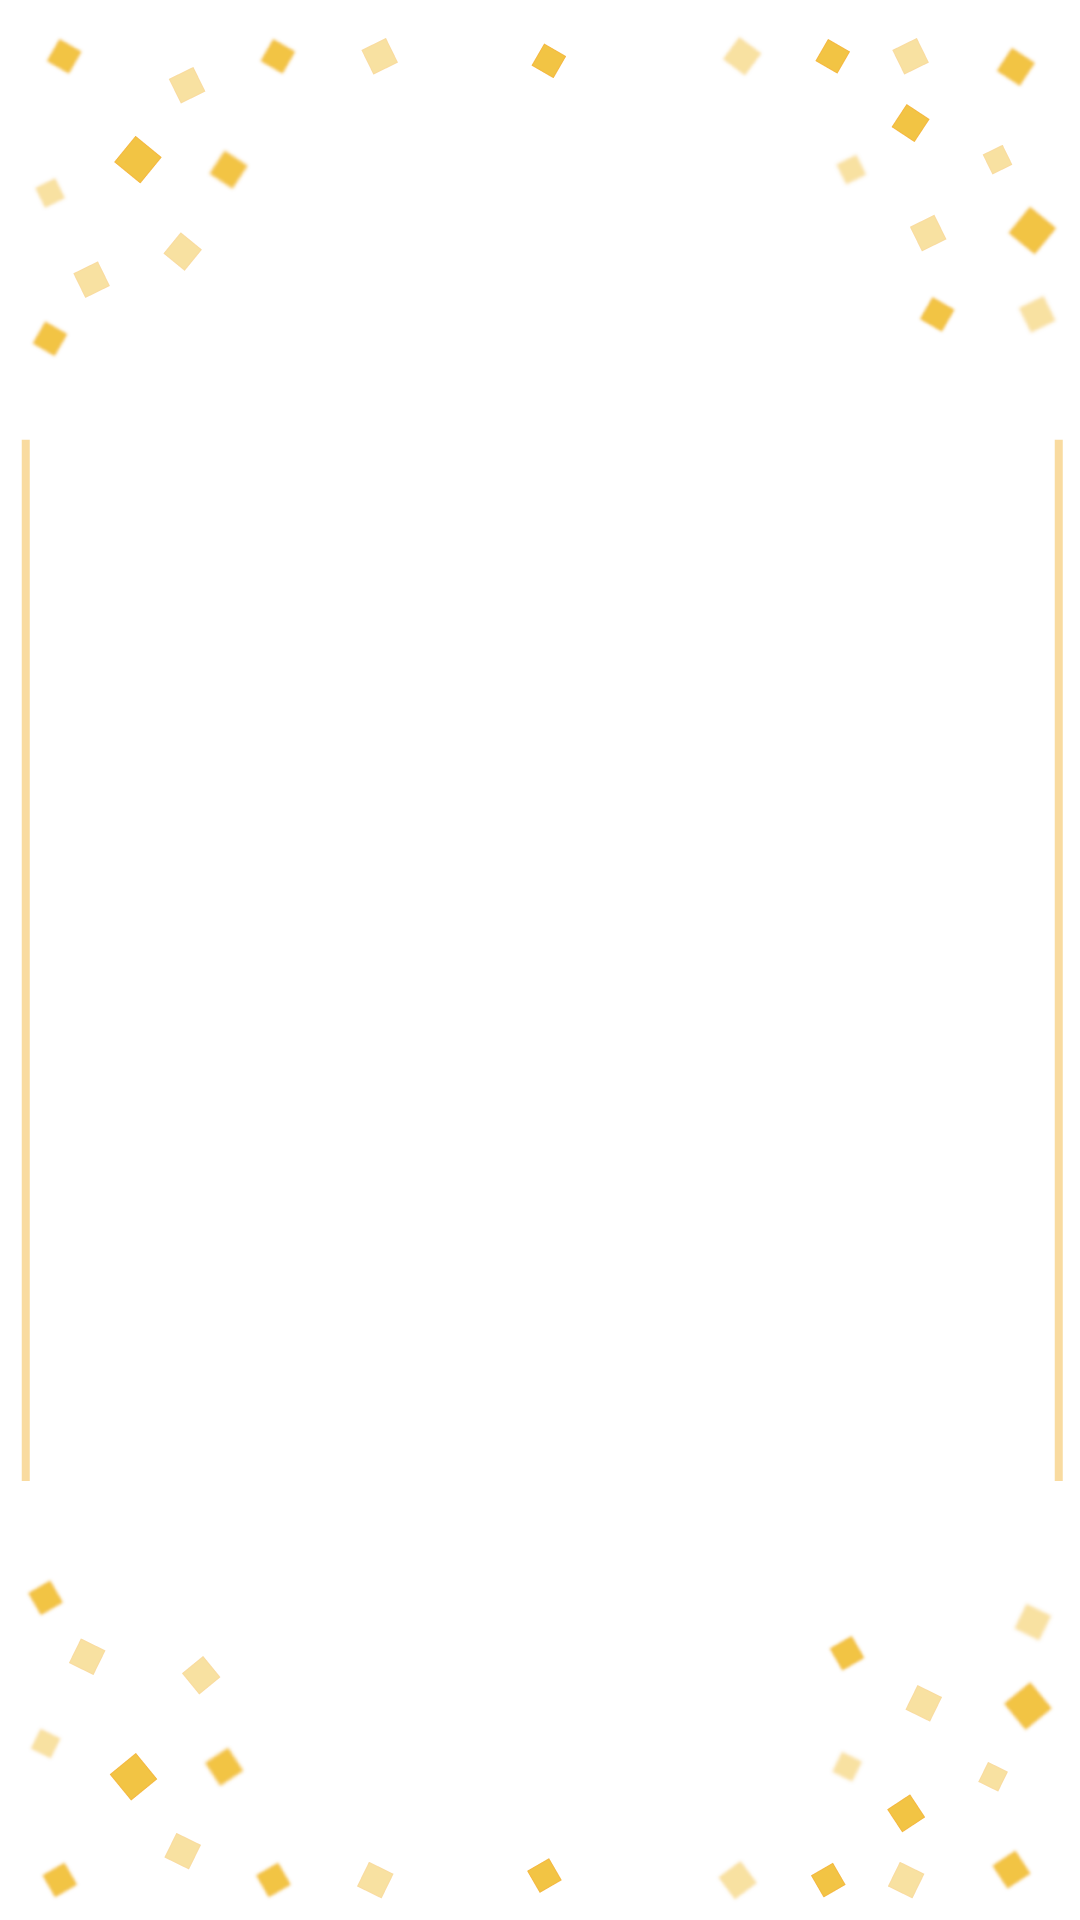 Confetti border png. Gold birthday snapchat filter